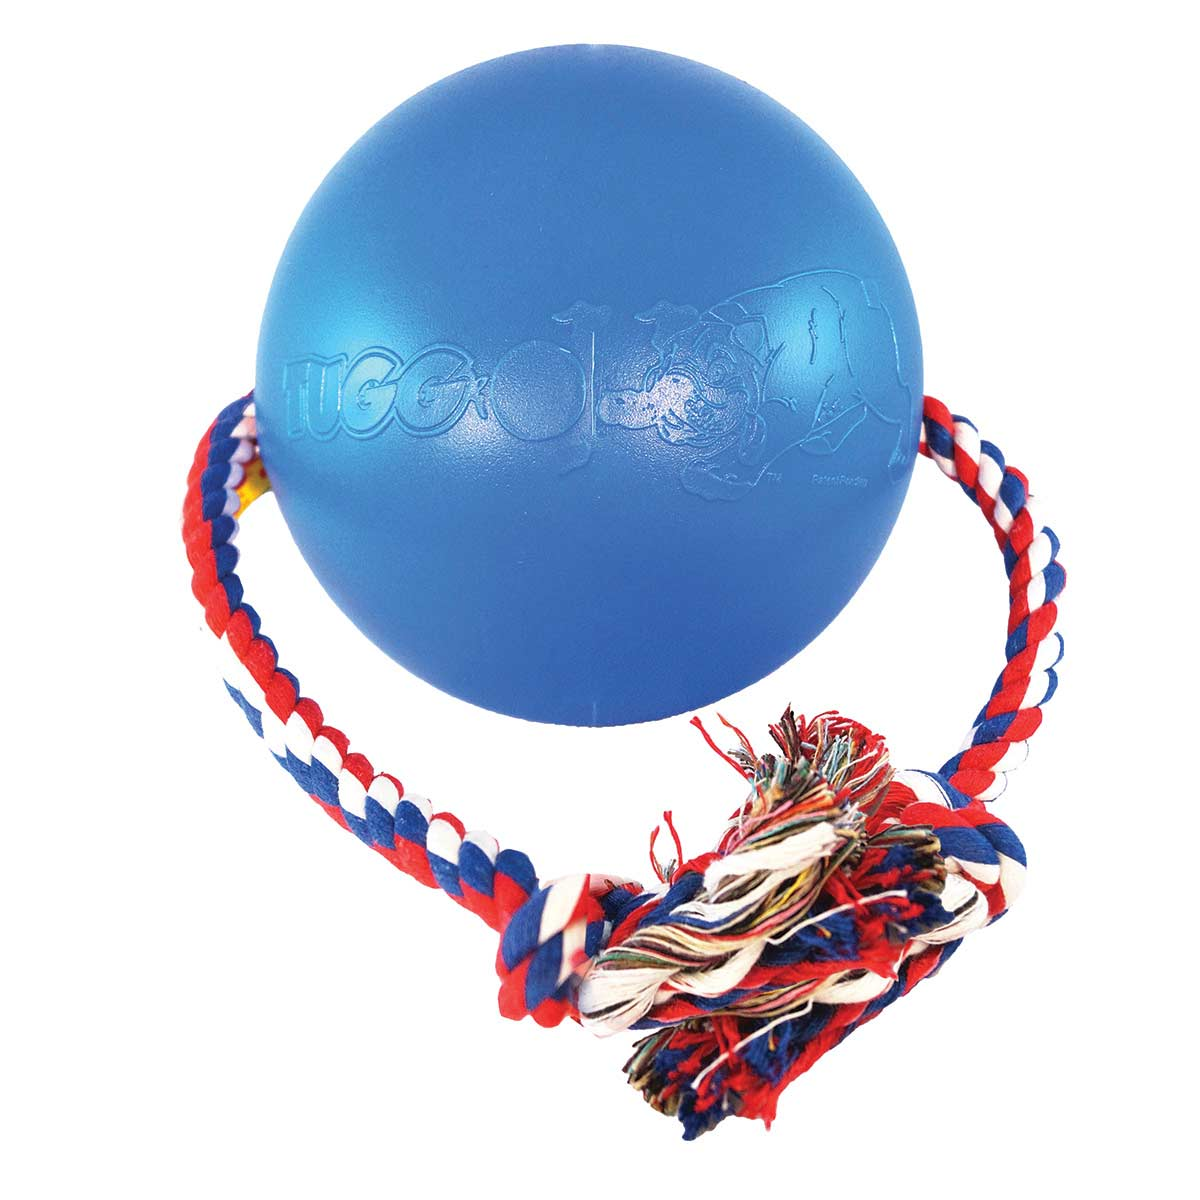 Large Tuggo Blue Dog Toy available at Ryan's Pet Supplies